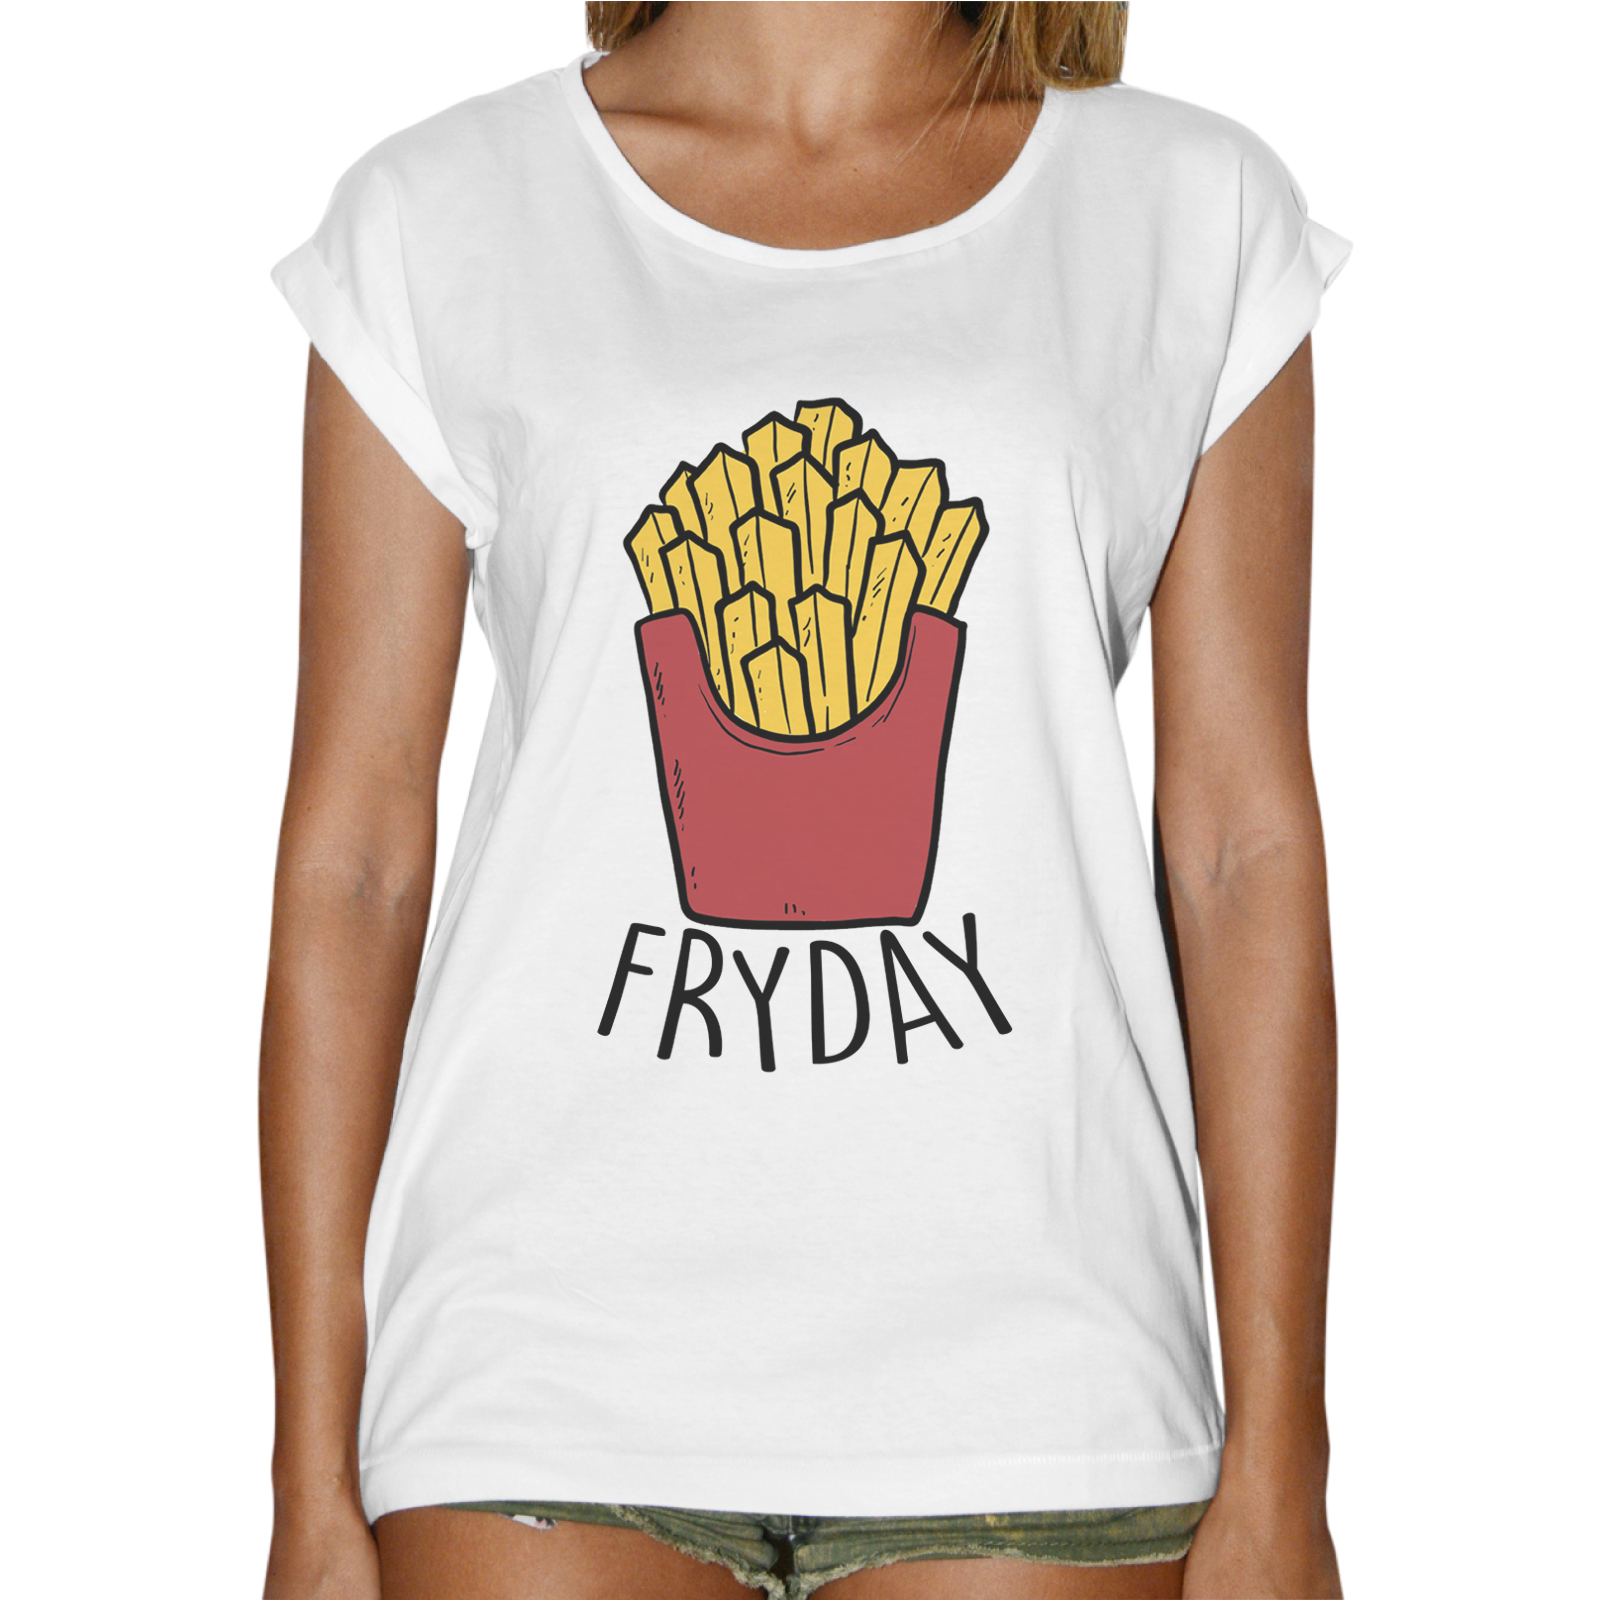 T-Shirt Donna Fashion FRYDAY